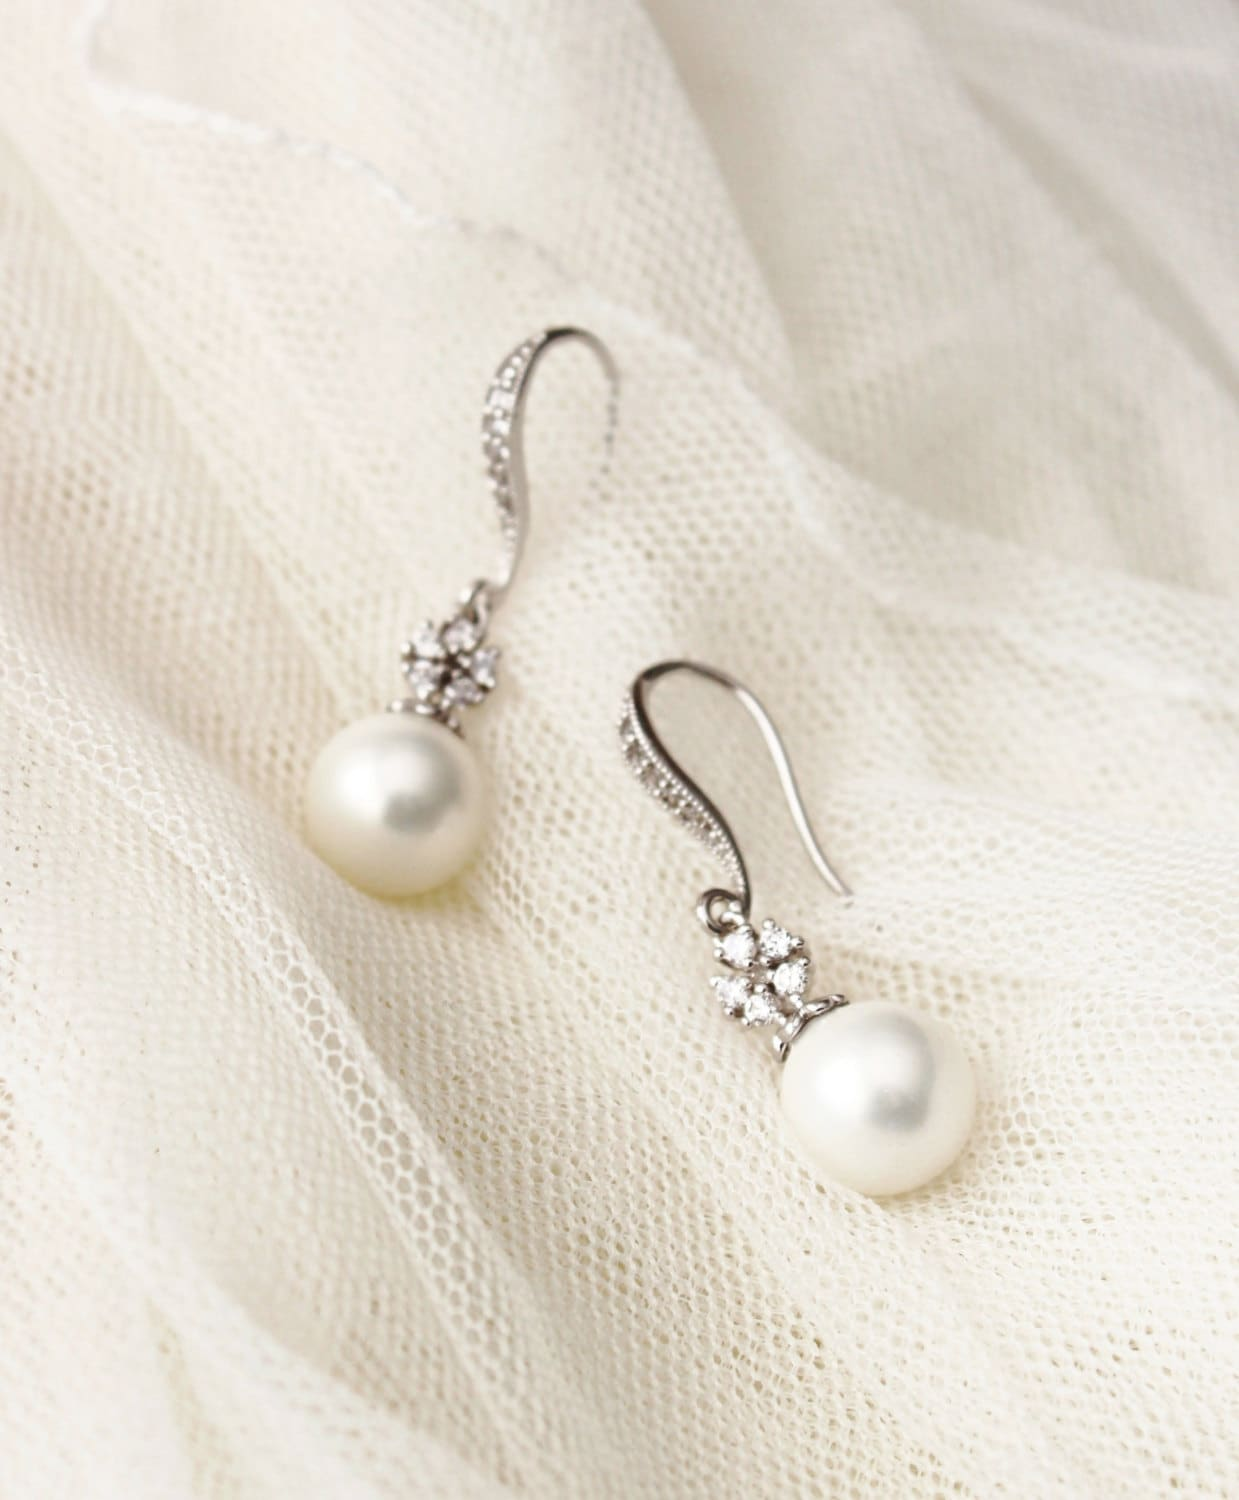 Bridal Earrings Drop Pearl Earrings Wedding Jewelry Bridesmaid